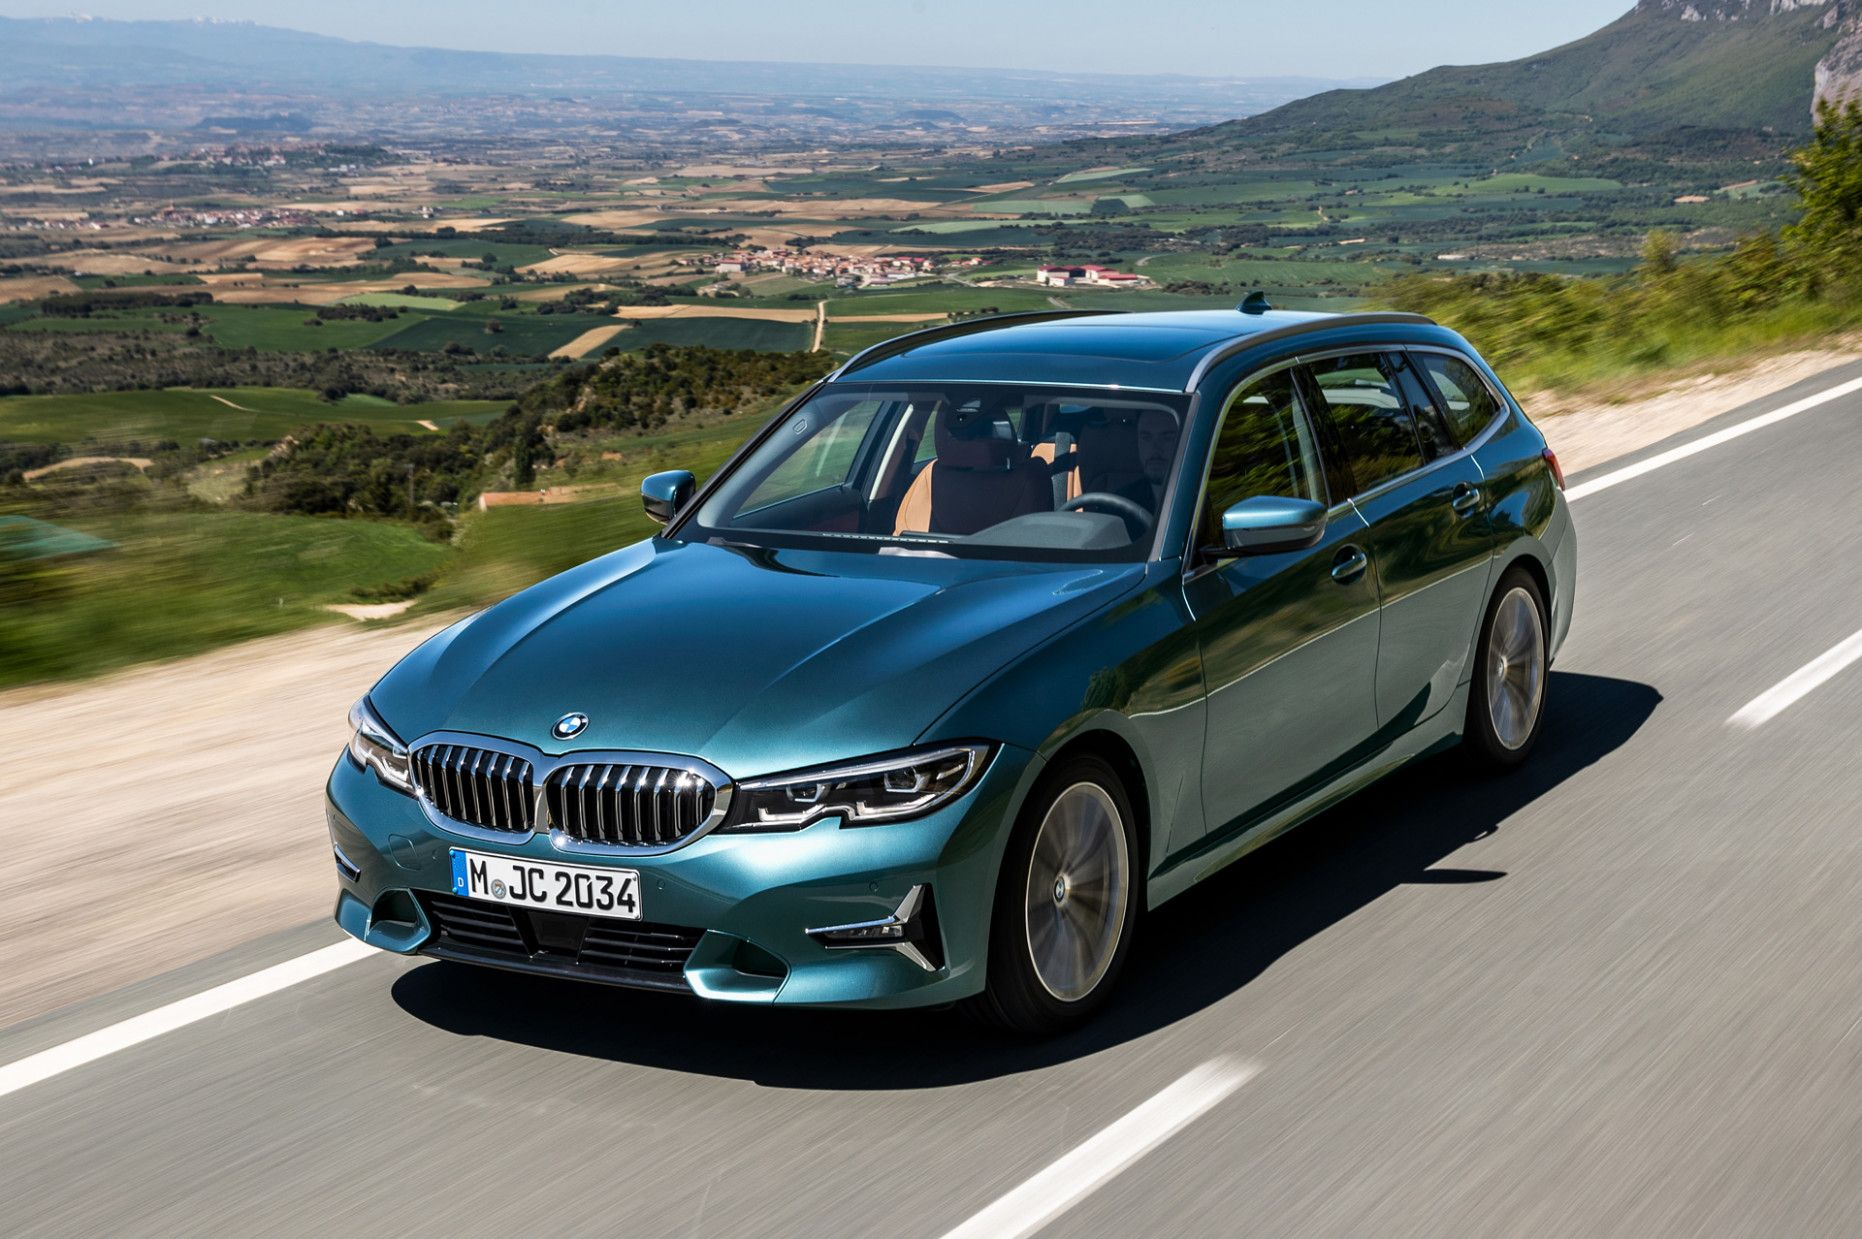 9 Image 2020 Bmw Wagon For Sale in 2020 | Sports wagon ...